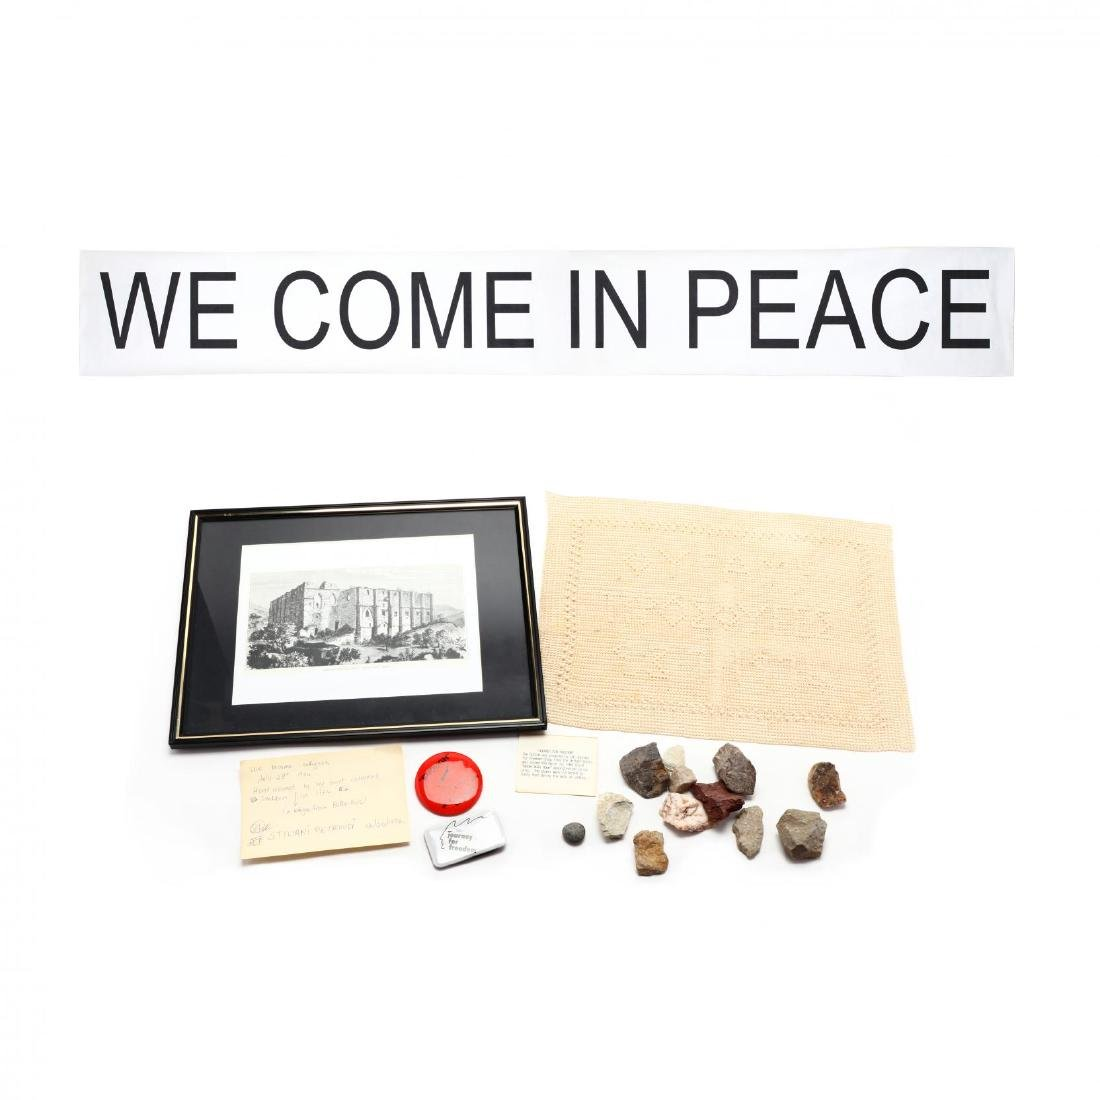 Six Items Relating to the Turkish Occupation of 1974